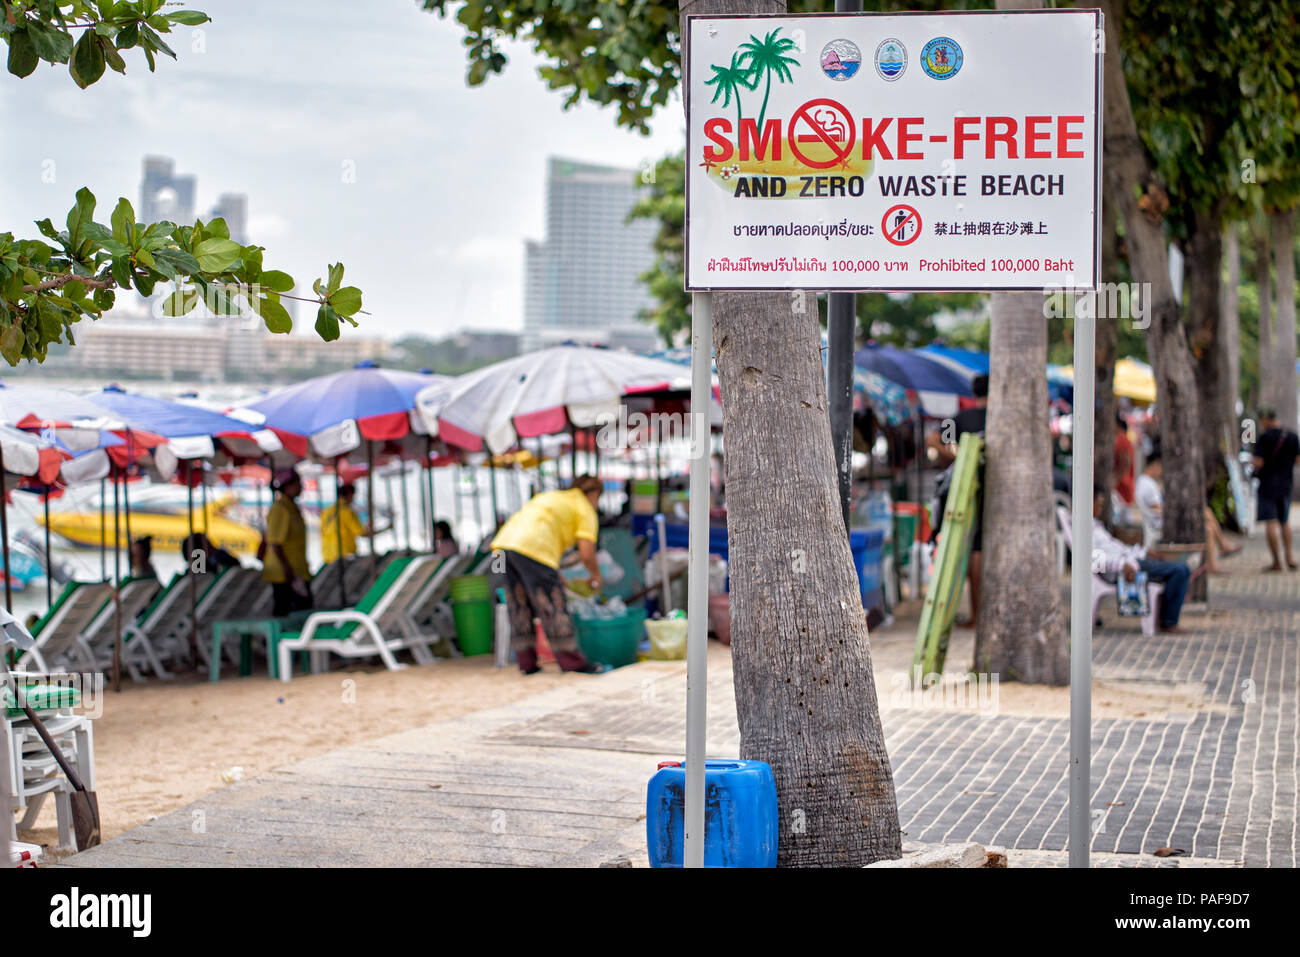 Smoke free and waste free beach warning sign with penalty for violation identified. Pattaya City, Beach Road, Thailand, Southeast Asia - Stock Image